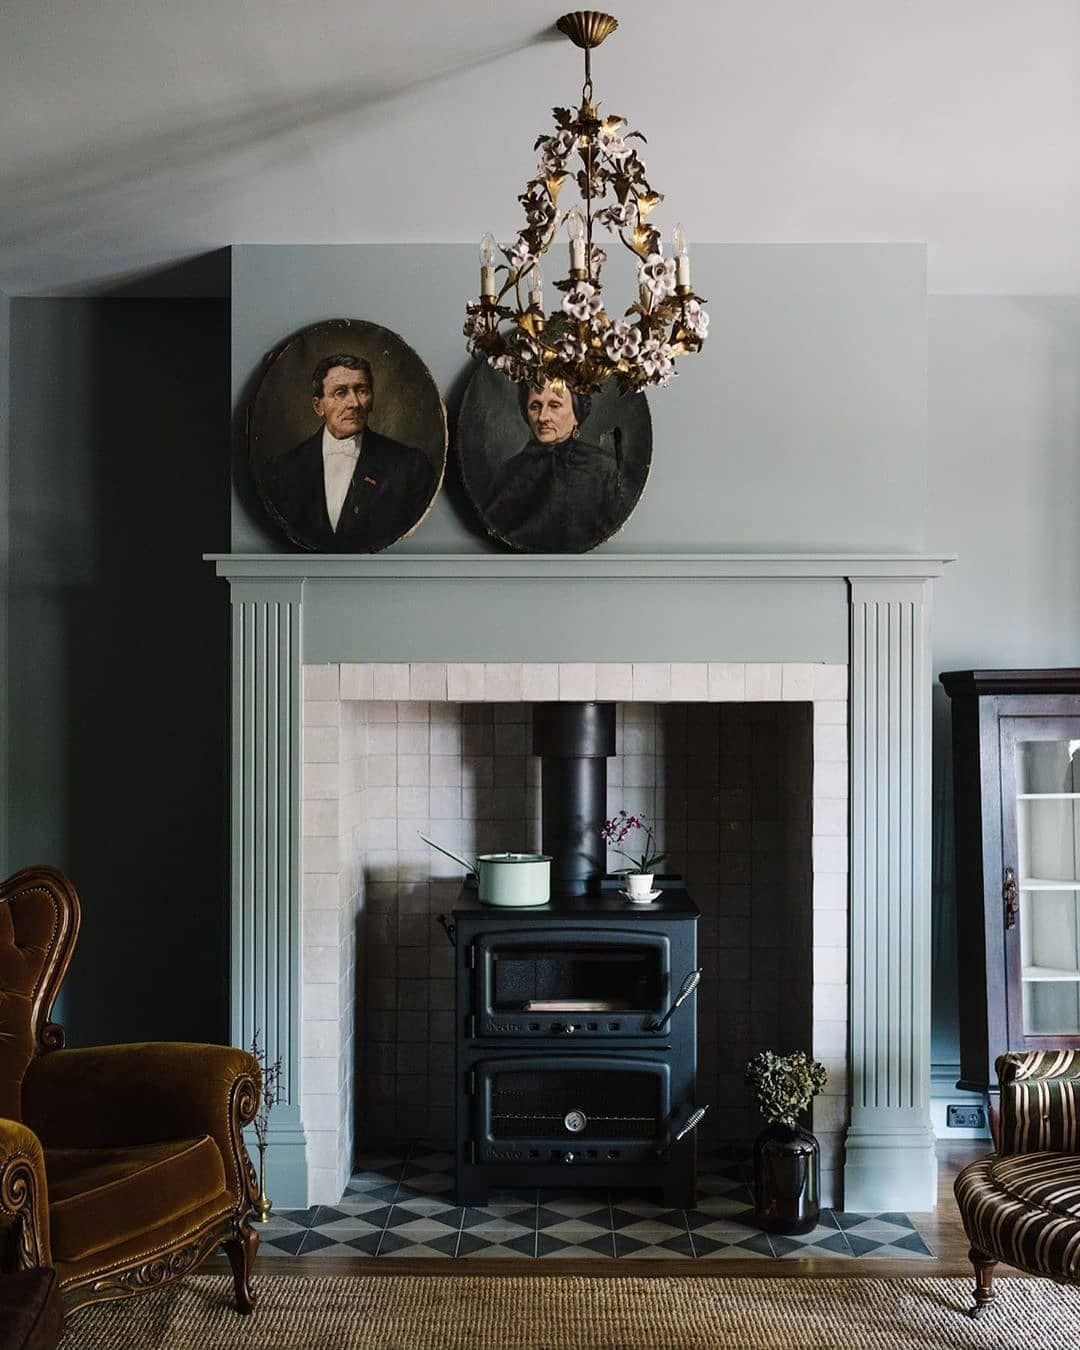 Porter S Paints On Instagram The Distinguished Lumierelodge In Tasmania Every Room Has Been Thoughtfully Des In 2020 Home Decor Interior Design Interior Decorating